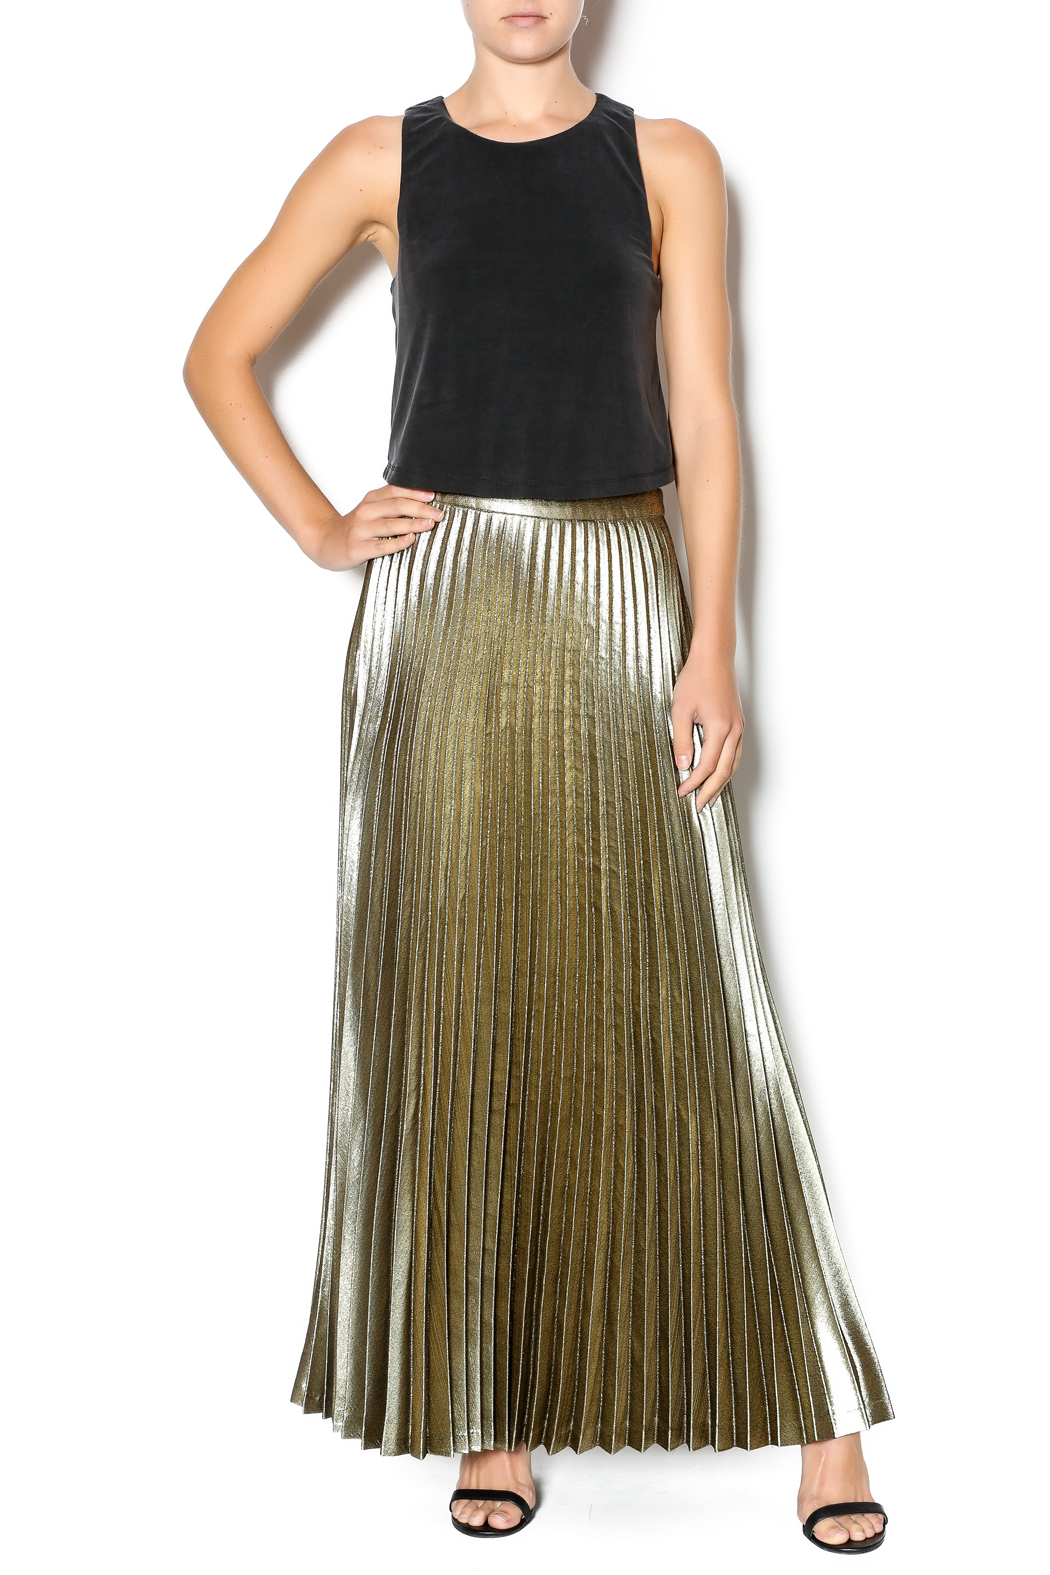 Gold Pleated Maxi Skirt - Skirts